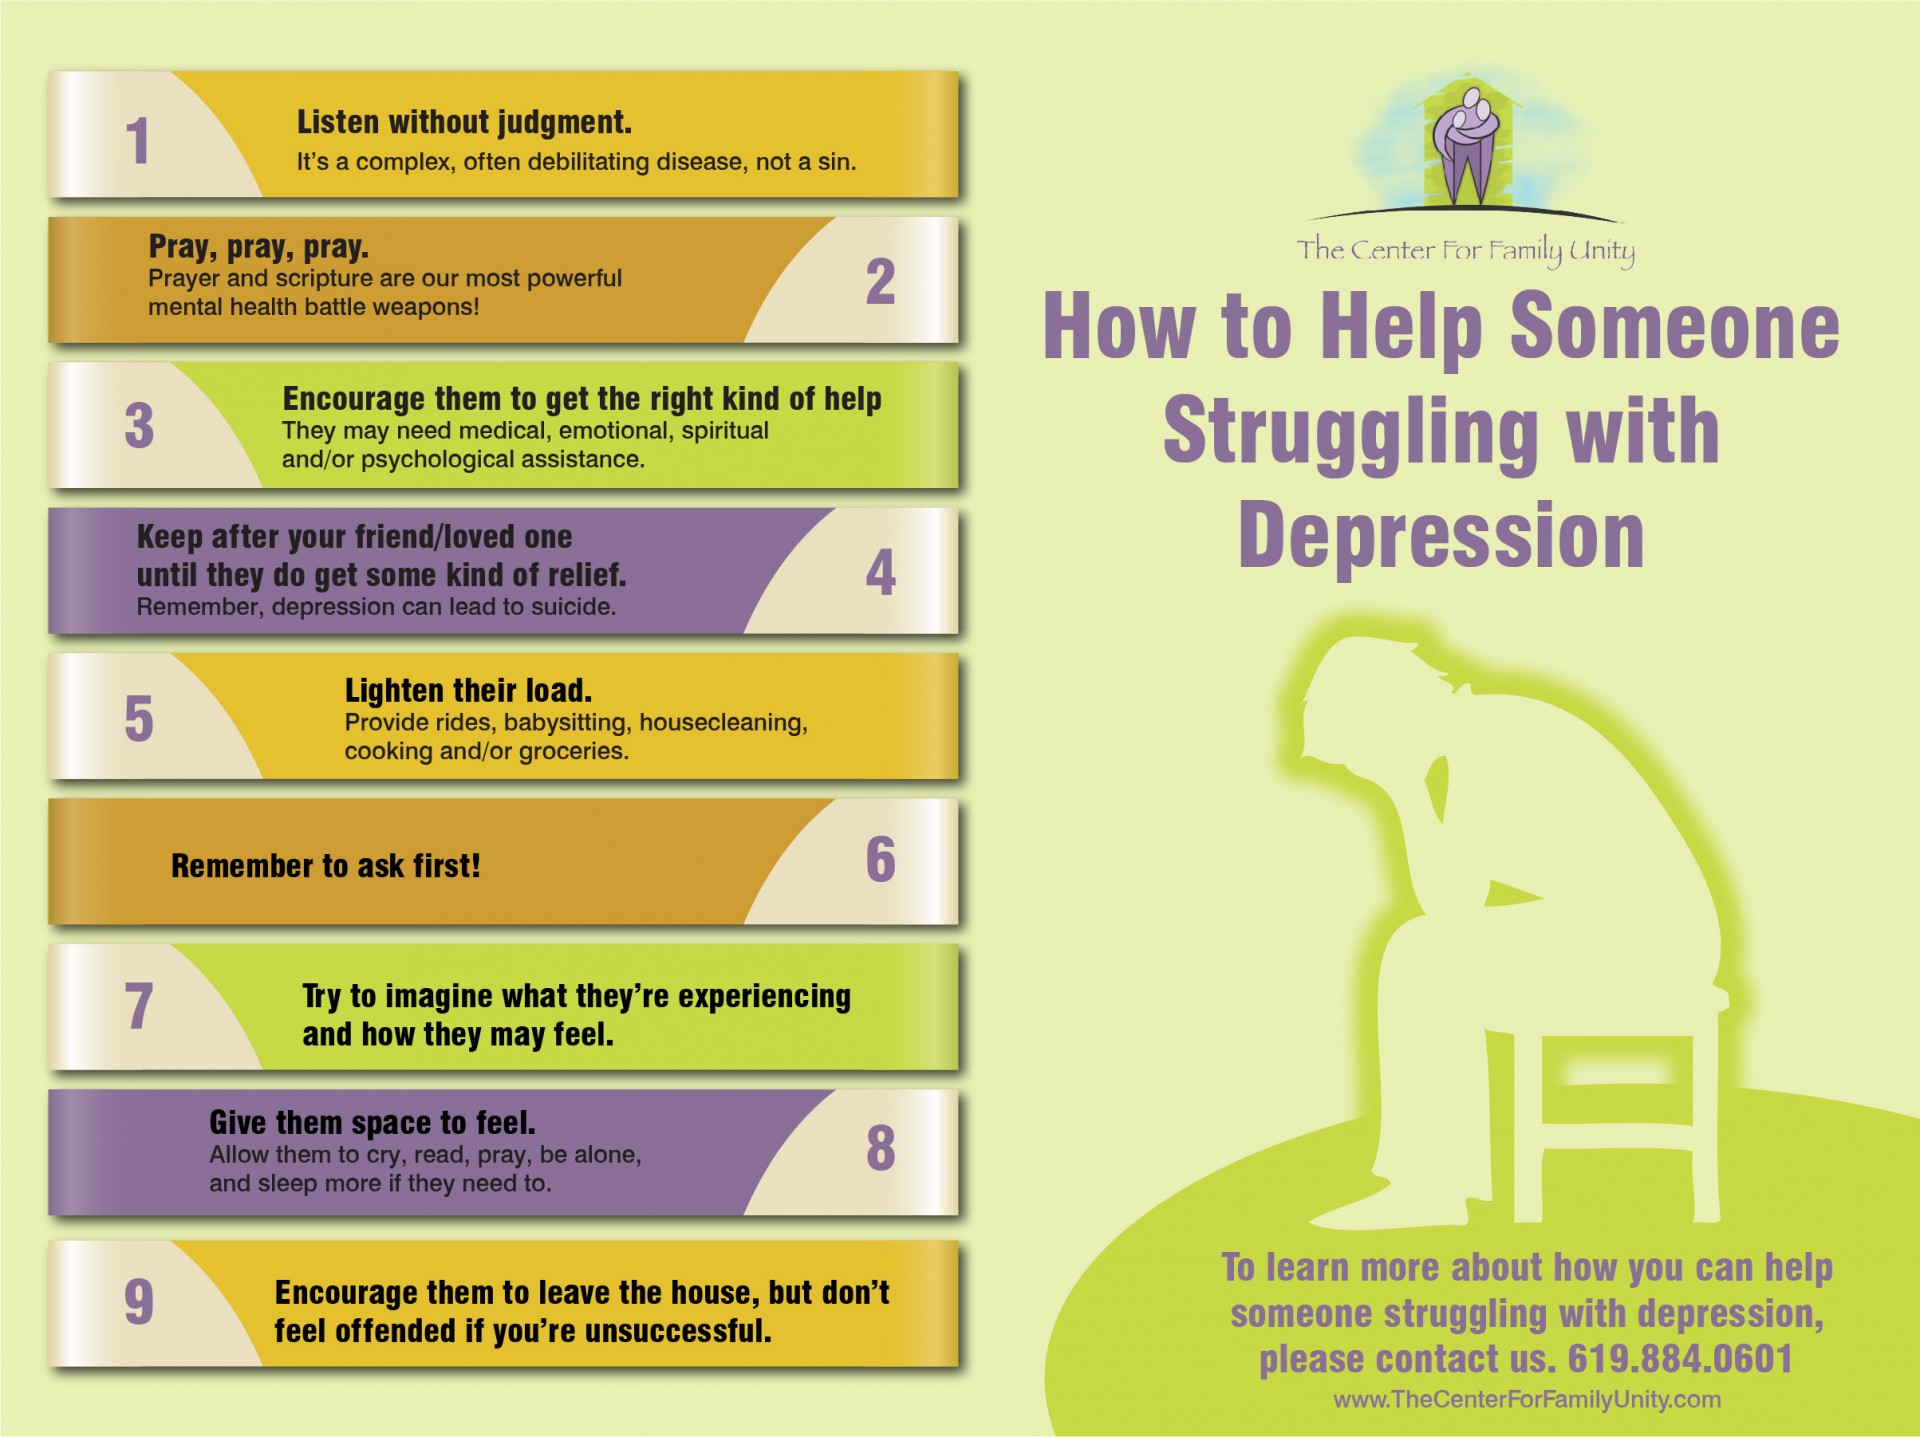 010 Essay Example How To Help Someone Struggling With Depression Rev About Helping Friend In Singular A Need Narrative Is Indeed 1920